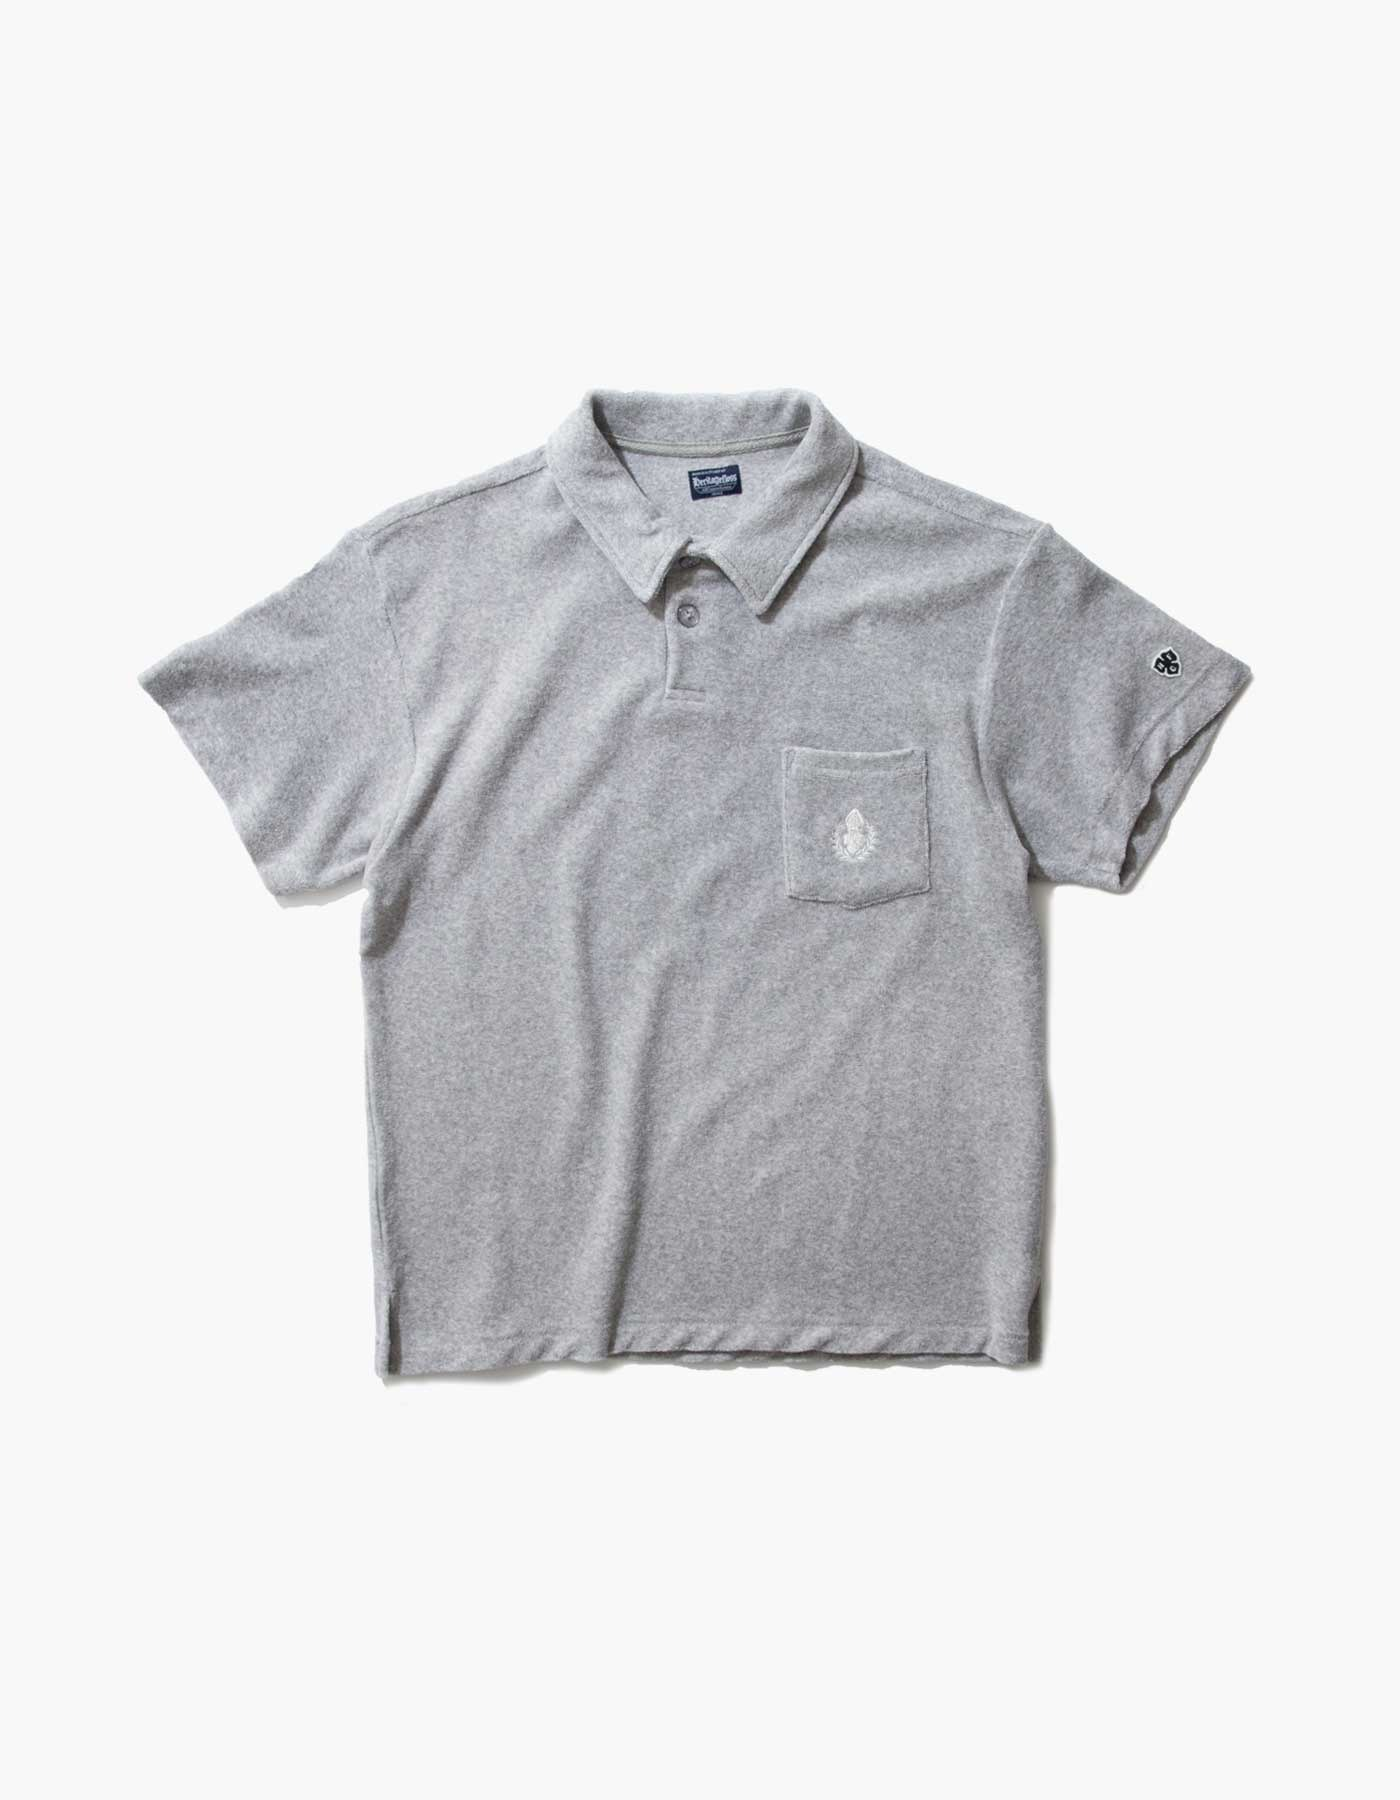 HFC CREST TOWEL POLO SHIRTS / M.GREY(5%)